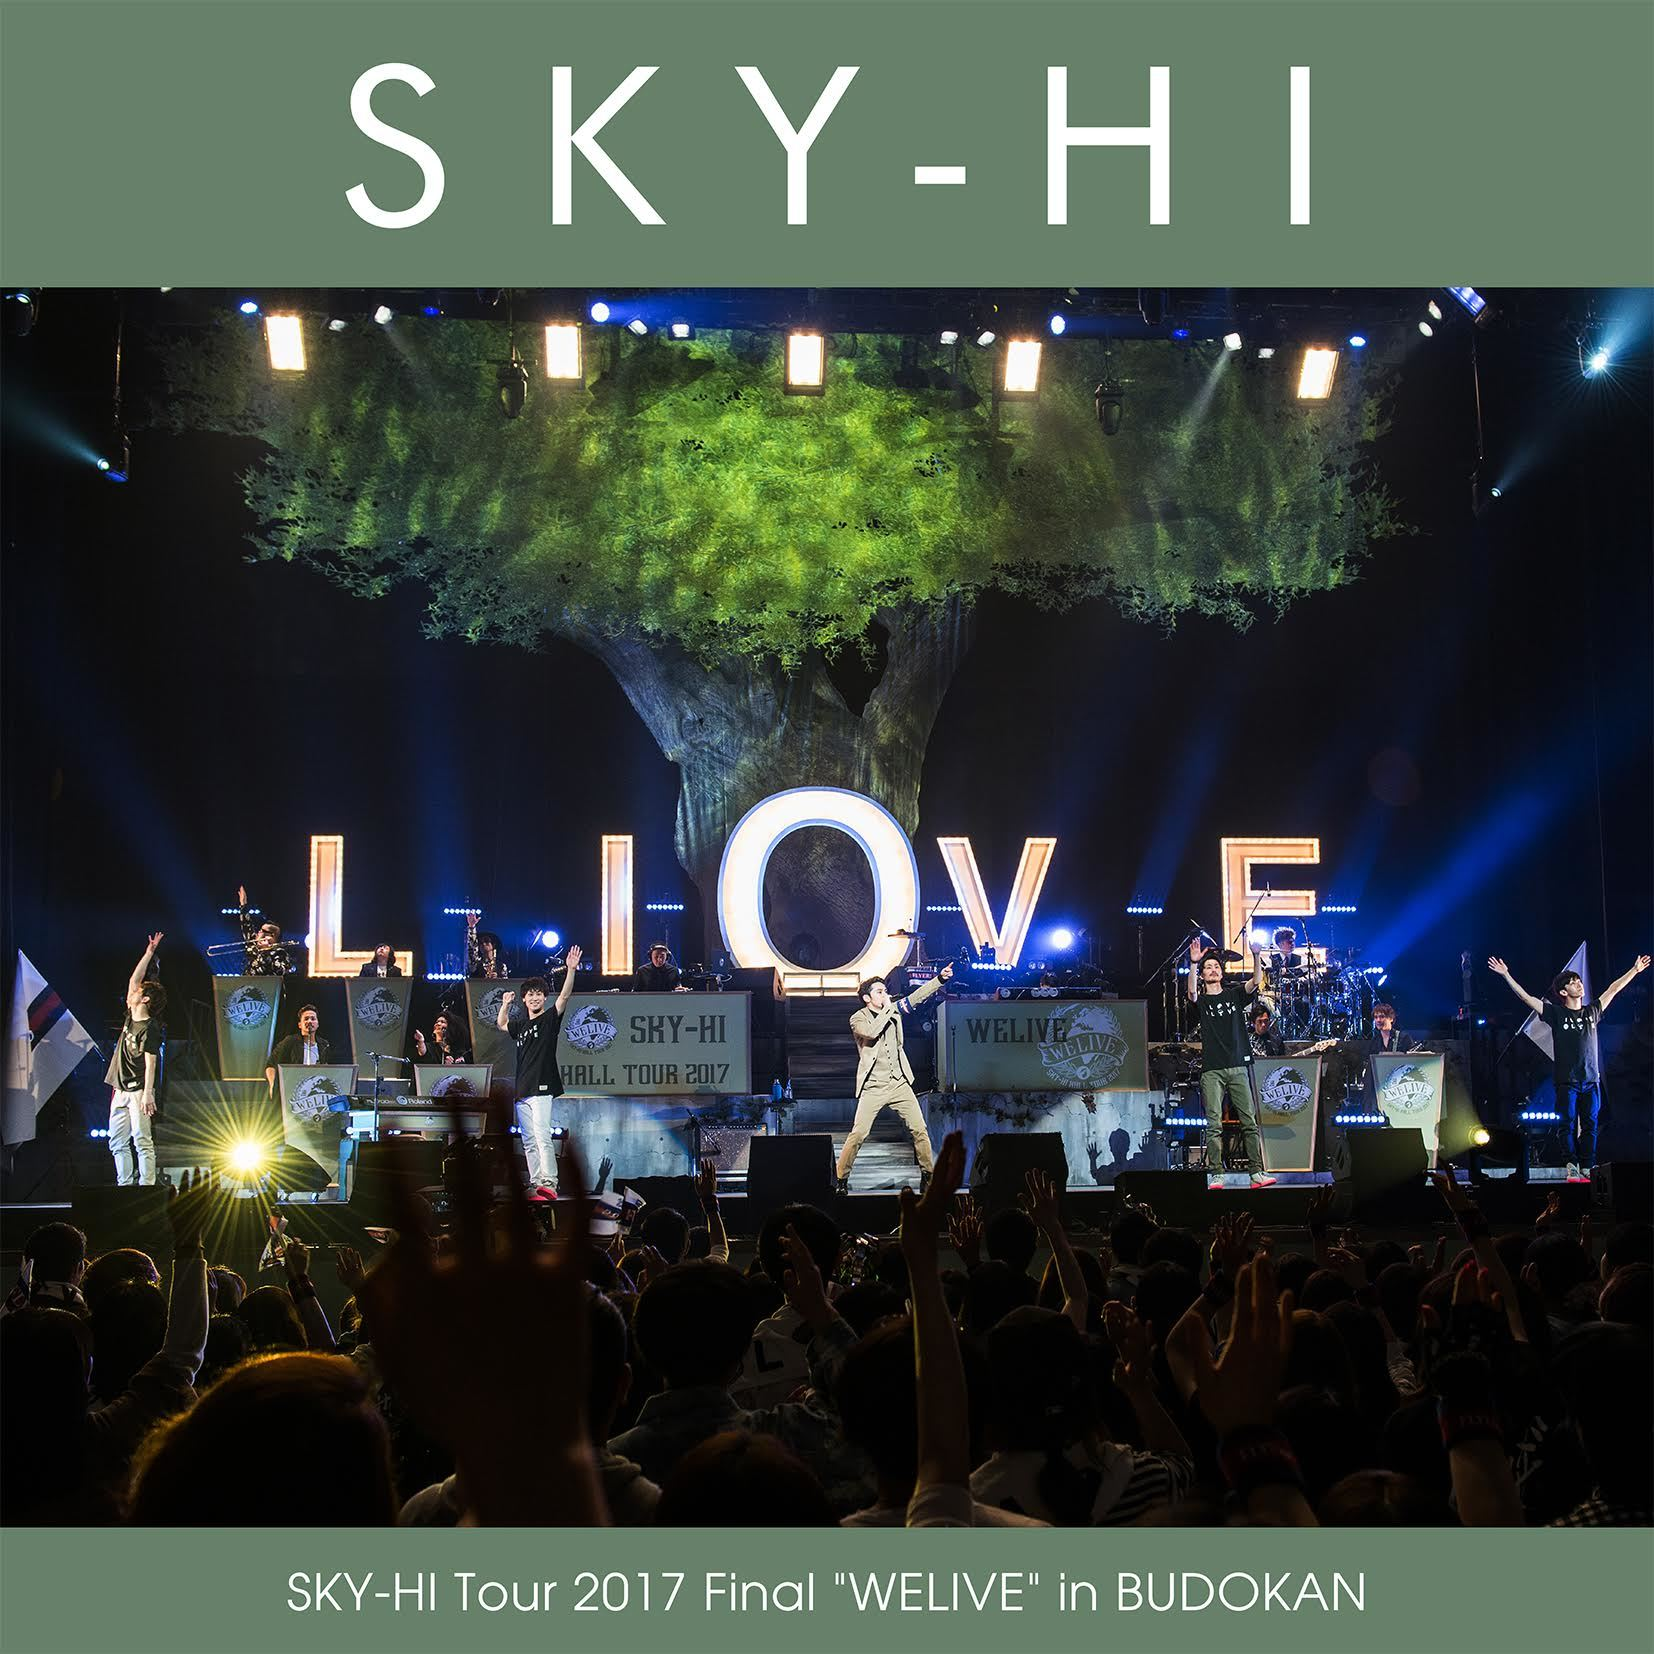 "SKY-HI / カミツレベルベット -SKY-HI Tour 2017 Final """"WELIVE"""" in BUDOKAN-"